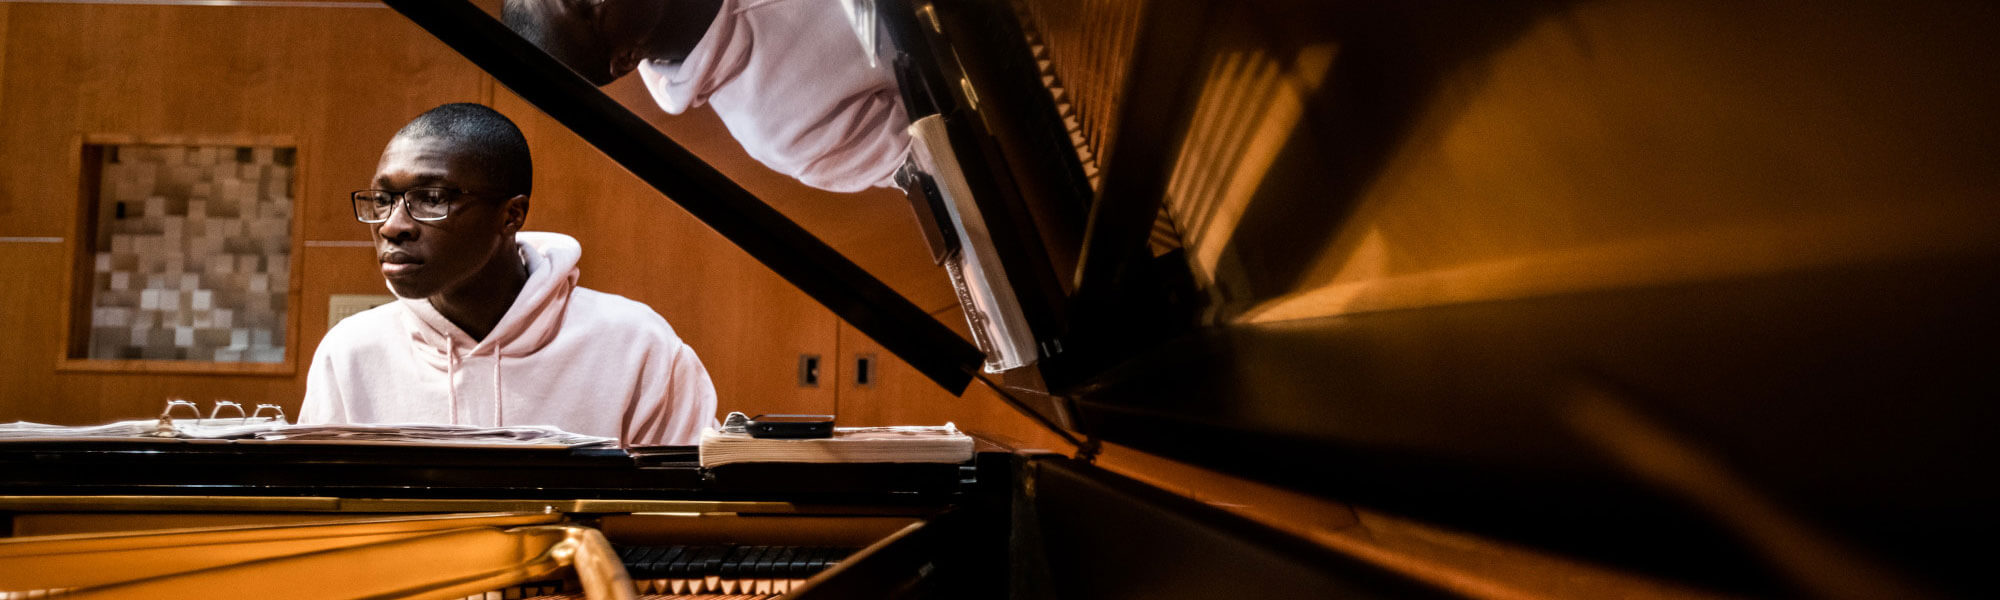 A GVSU music student plays the piano in the Louis Armstrong Theatre.